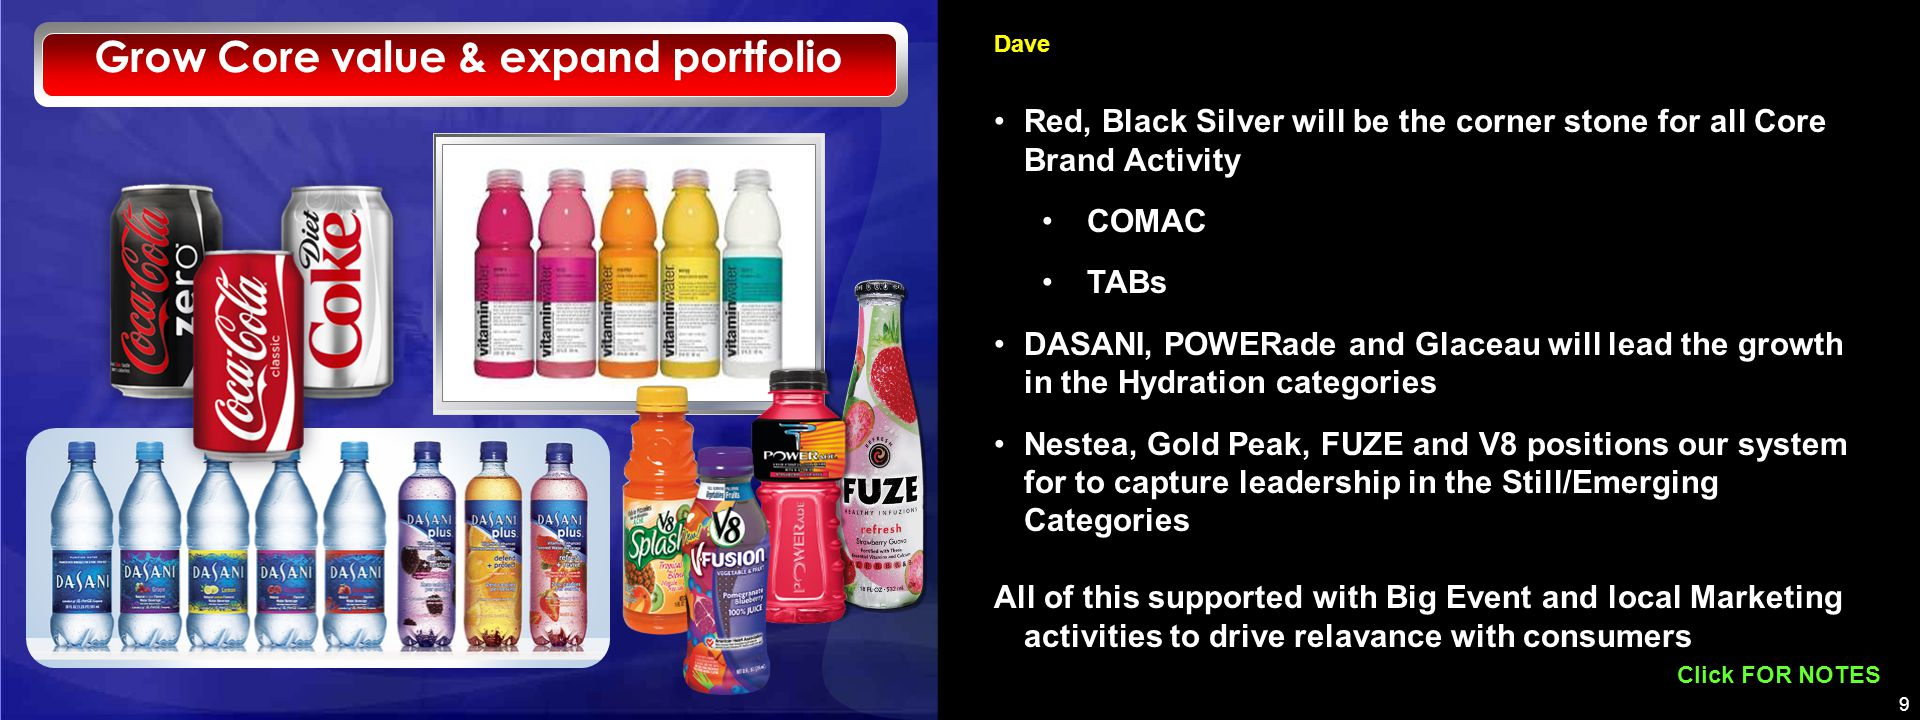 20 Dave Click to advance 2008 Still - POWER ADE COMAC Seasonal AA/ Endcap Pricing FebMarchAprilMayJuneJulyAugSeptOctNovDecJan EDLP Rollback PA 32oz POWER ADE 10pk PA 32ozPA 8pk PA 10pk PA TAB 32oz PA TAB 8pk PA TAB 10pk PA 8pk & 32oz PA 8pk & 32oz PA 8pk & 32oz POWER ADE 8pk POWER ADE 32oz POWER ADE 8pk POWER ADE 10pk POWER ADE 8pk POWER ADE 32oz POWER ADE 10pk And Finally, Plans for POWERade that deliver another 40% - 50% in retail dollar growth Lead Main- tain 2007 Revise per changed Maintain/Lead columns and Holiday levels Add logos to all calendars +50% target $100MM brand